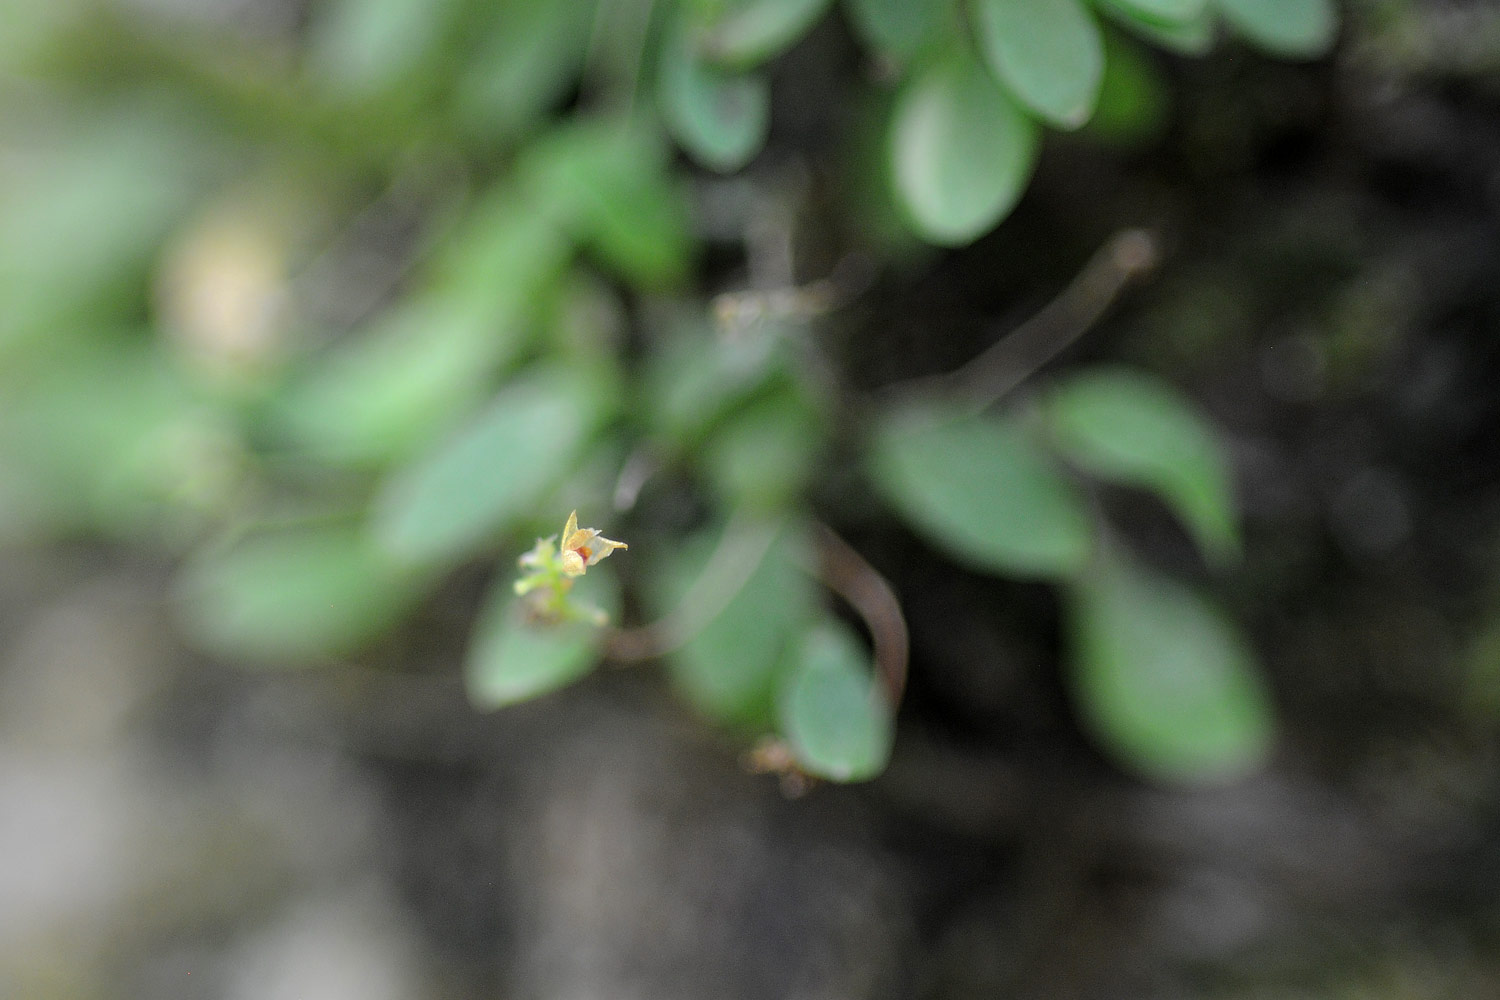 Smallest orchid in the world.  Approx 2mm across.